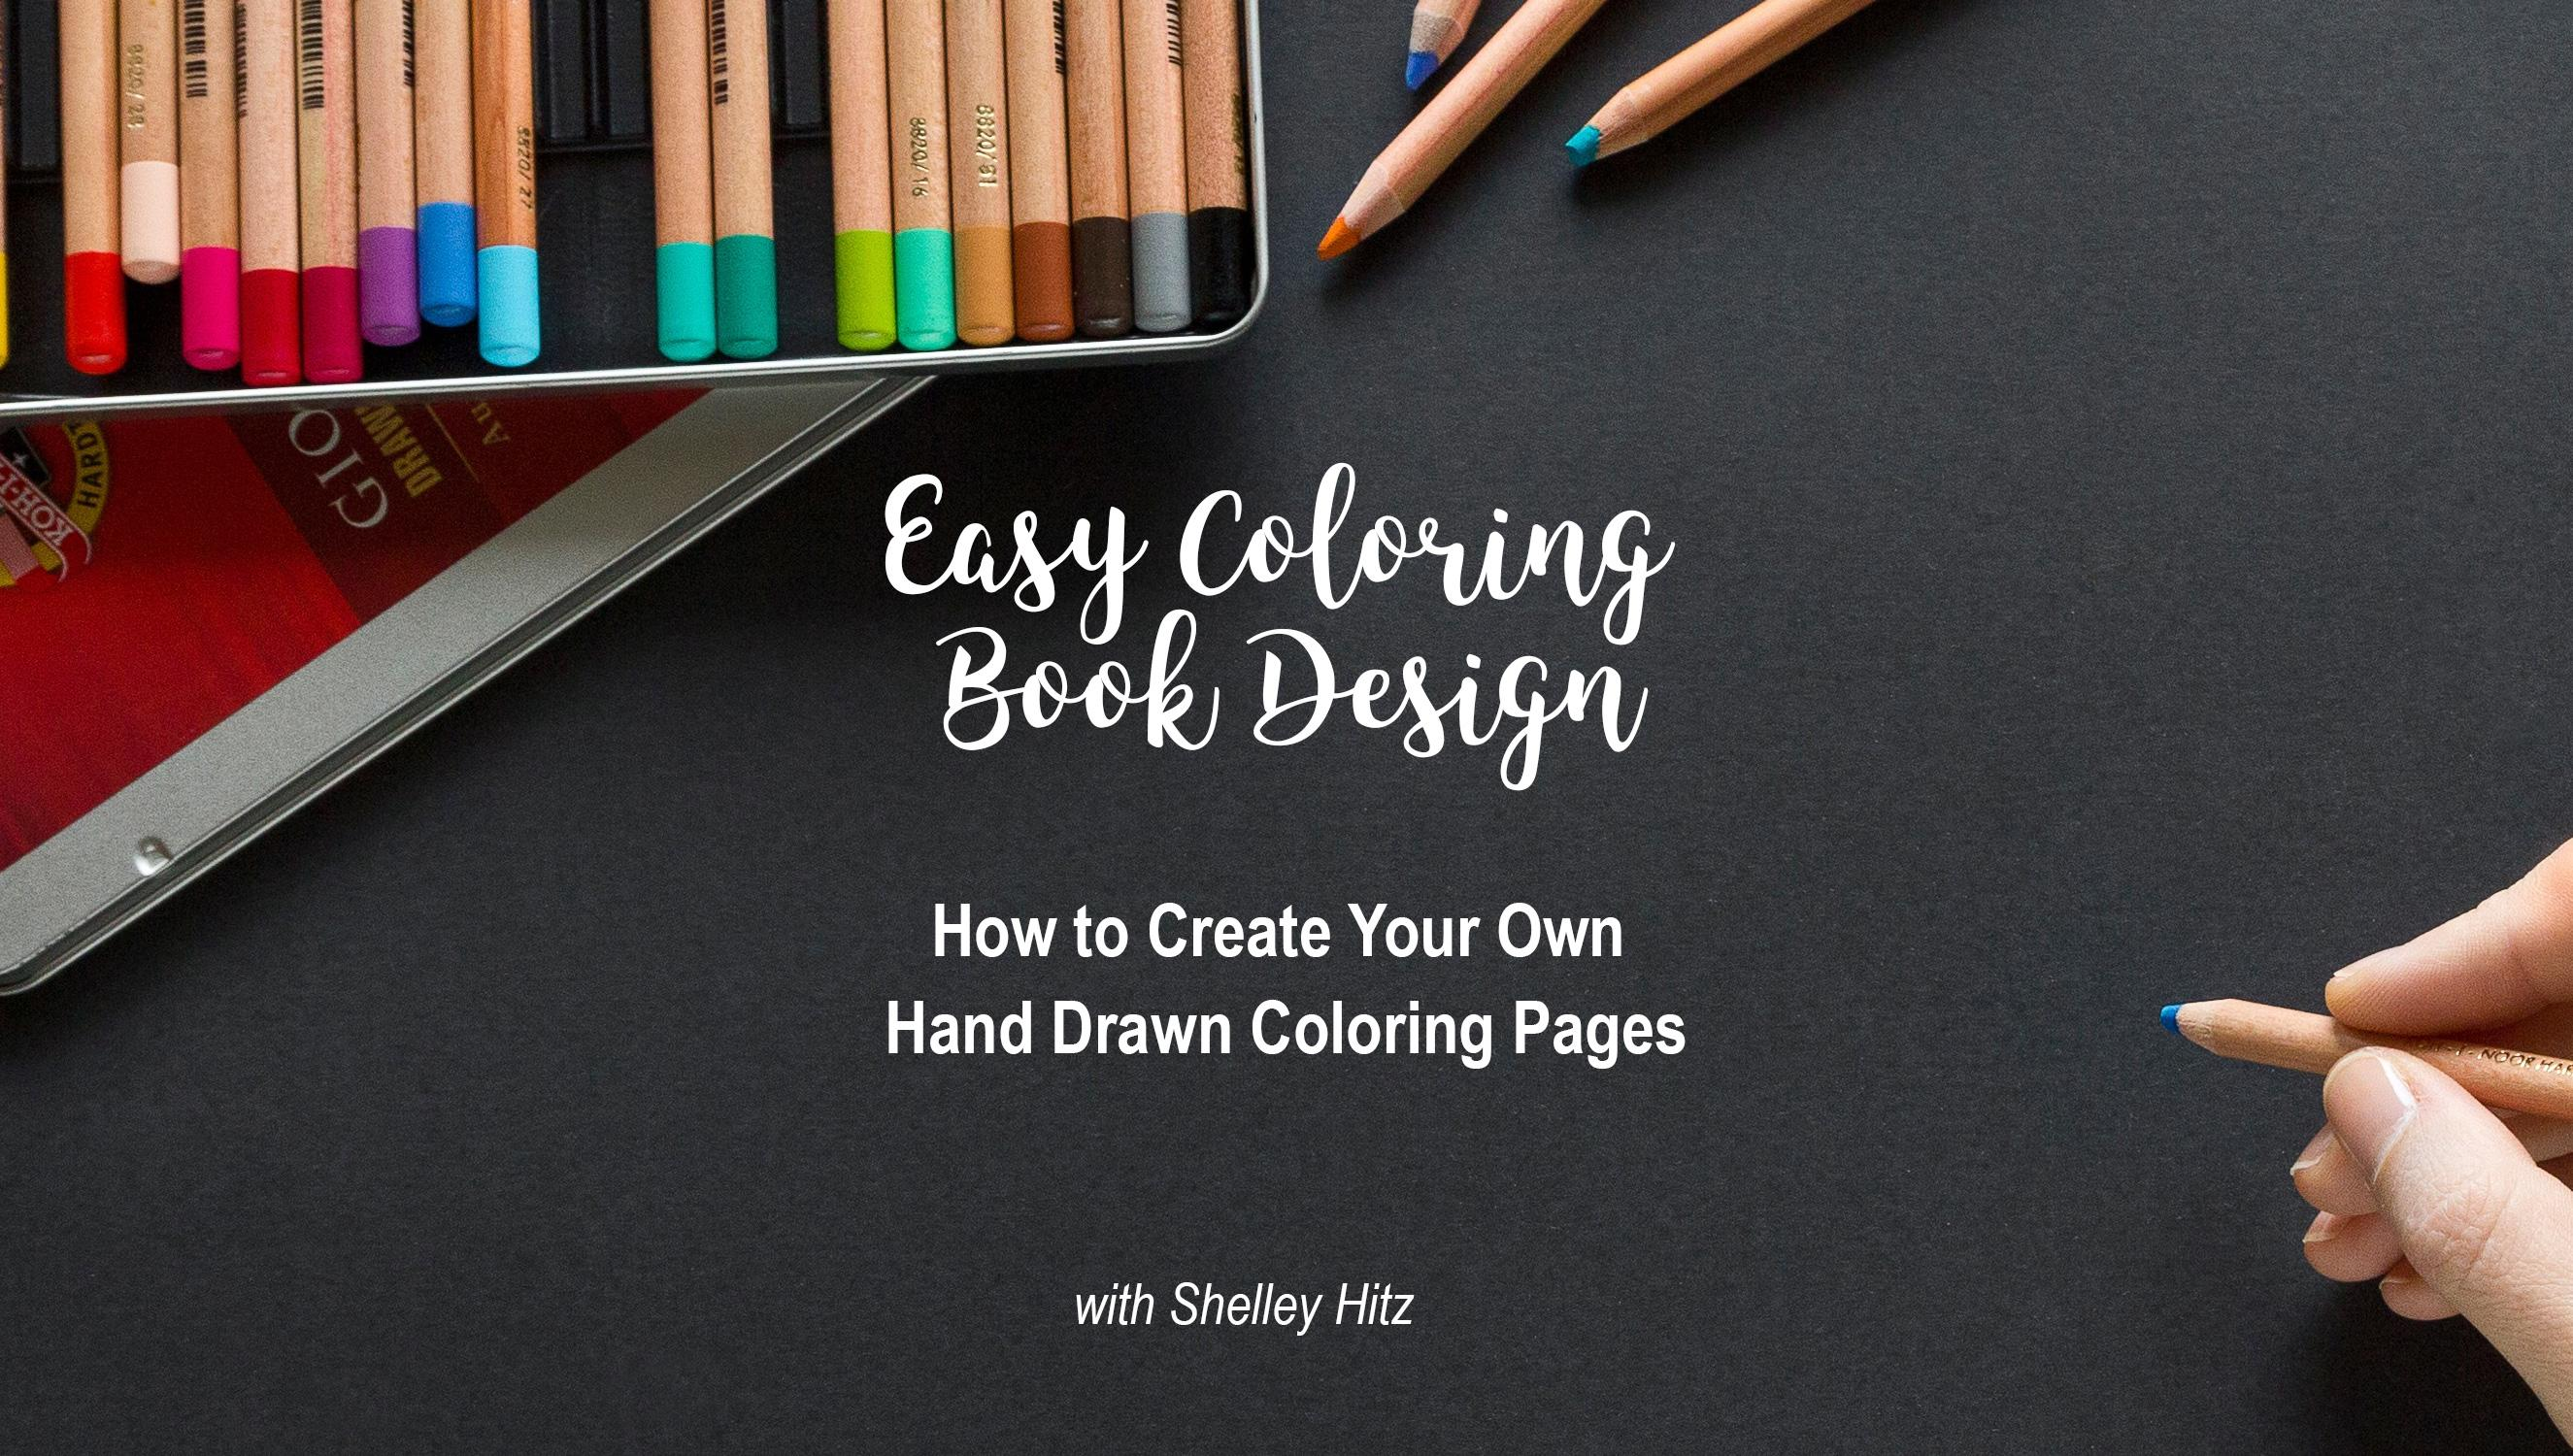 hand drawn coloring pages Easy Coloring Book Design: How to Create Your Own Hand Drawn  hand drawn coloring pages